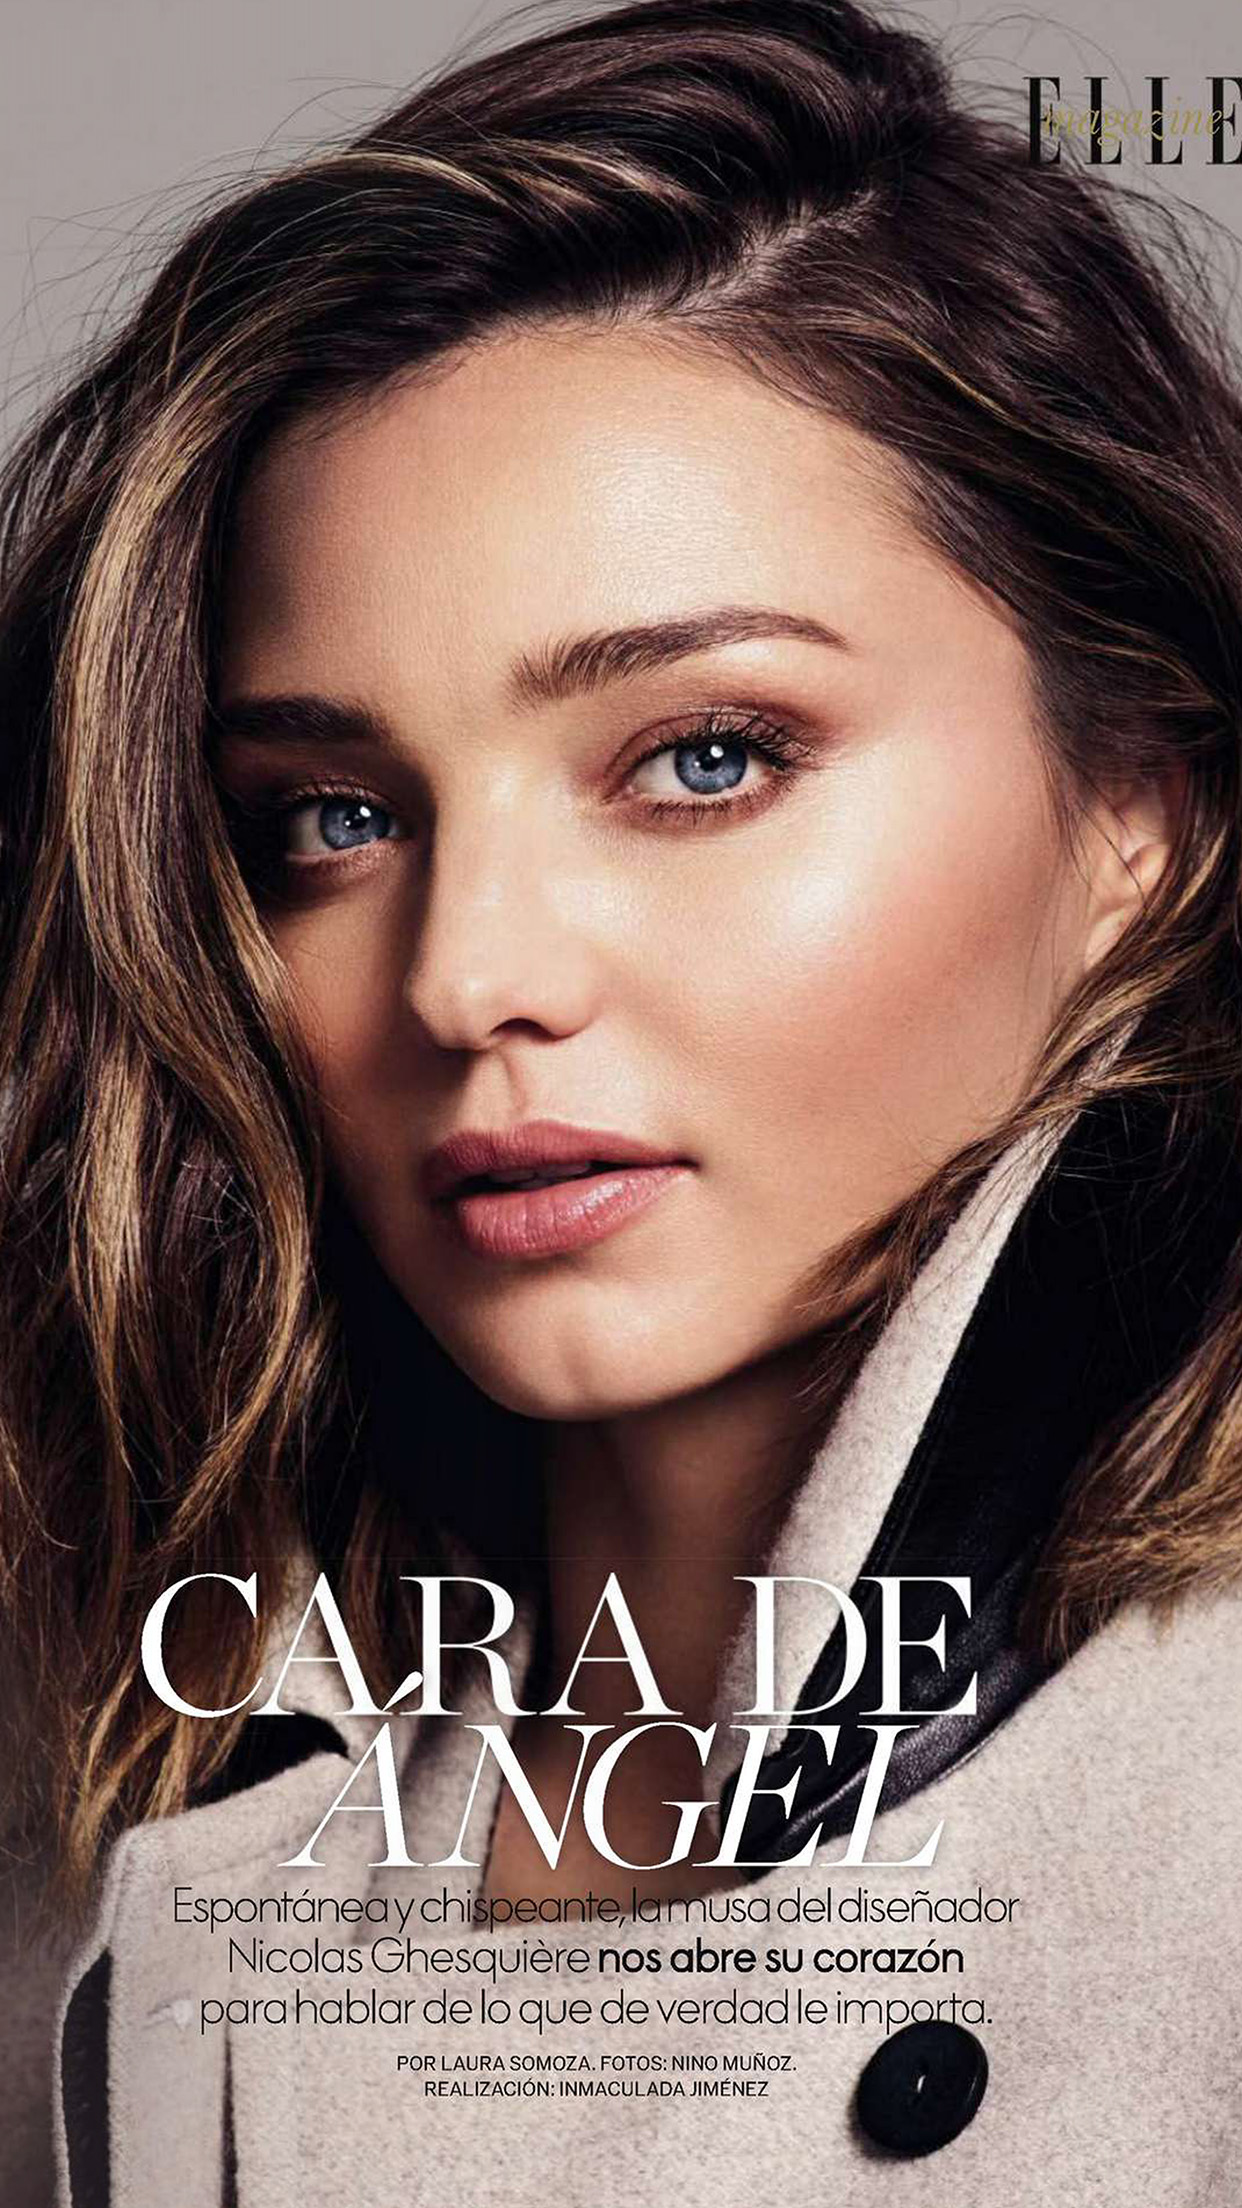 Miranda Kerr Magazine Face Girl Model Android wallpaper